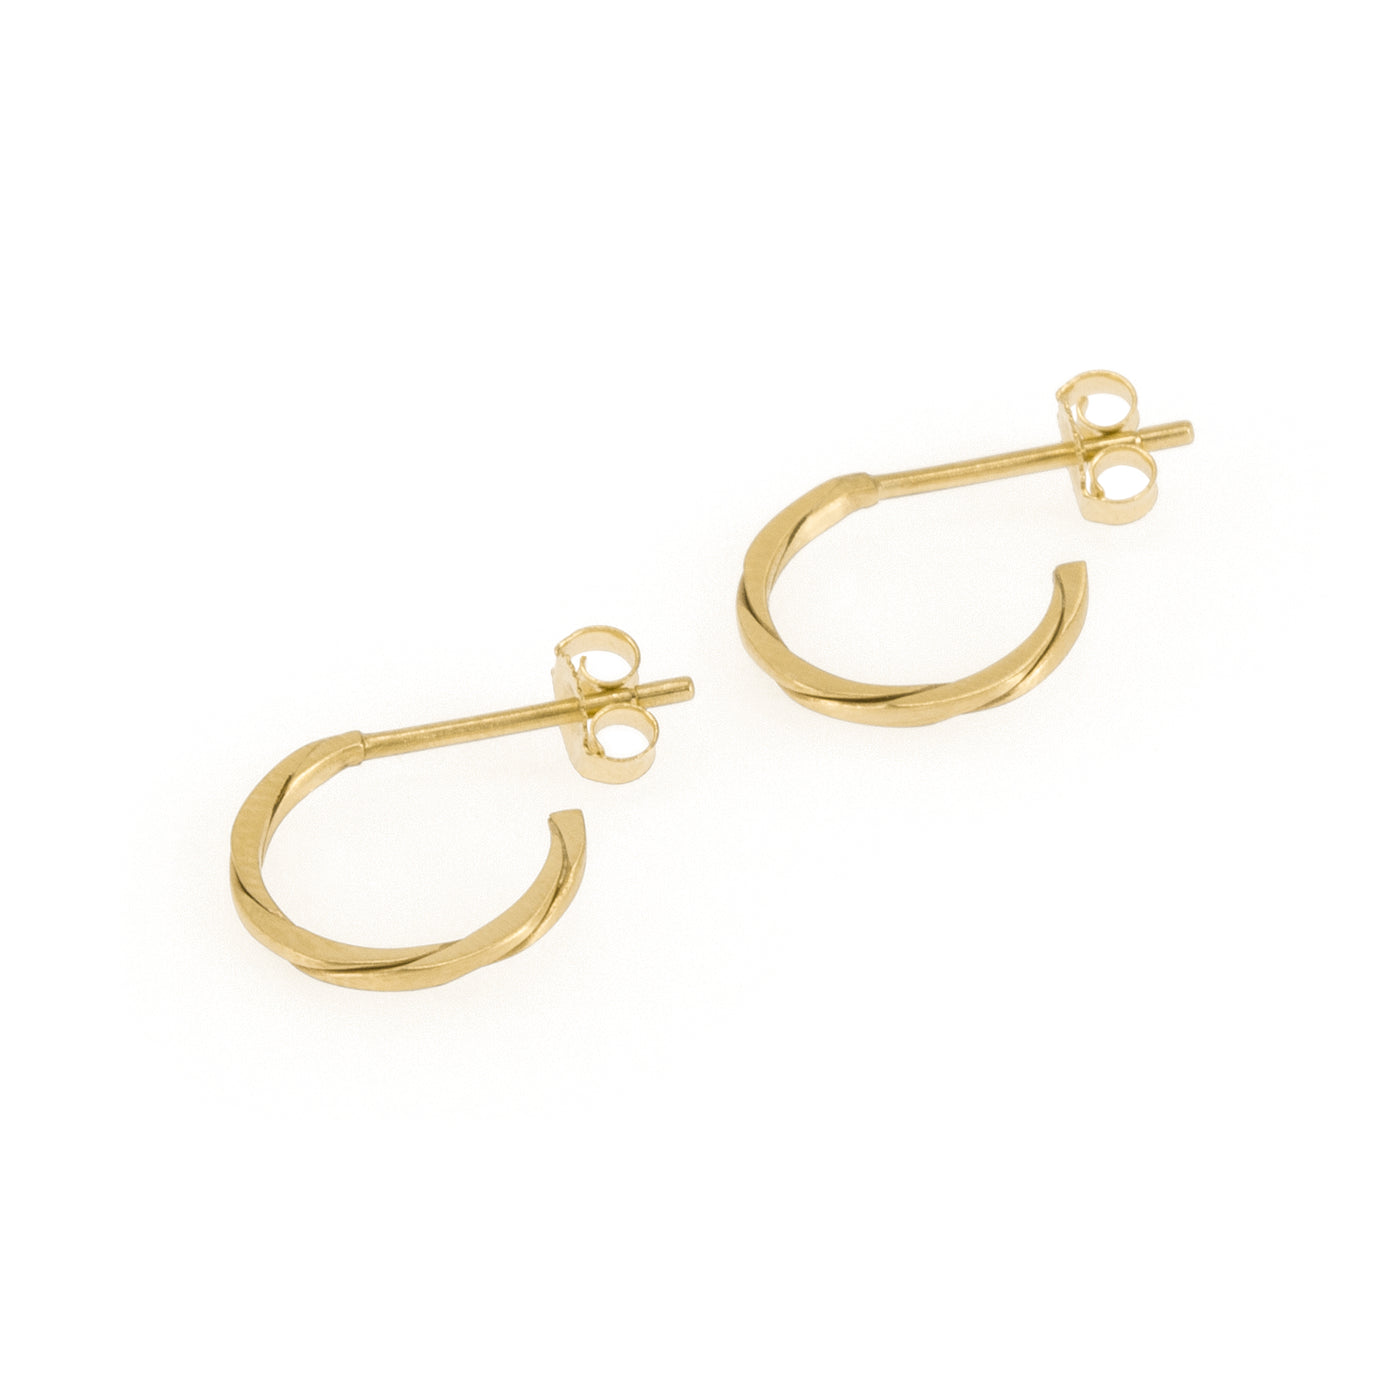 Eco-friendly gold earrings. These sustainable Twist Hoops are handmade in Cape Town in recycled gold from e-waste.